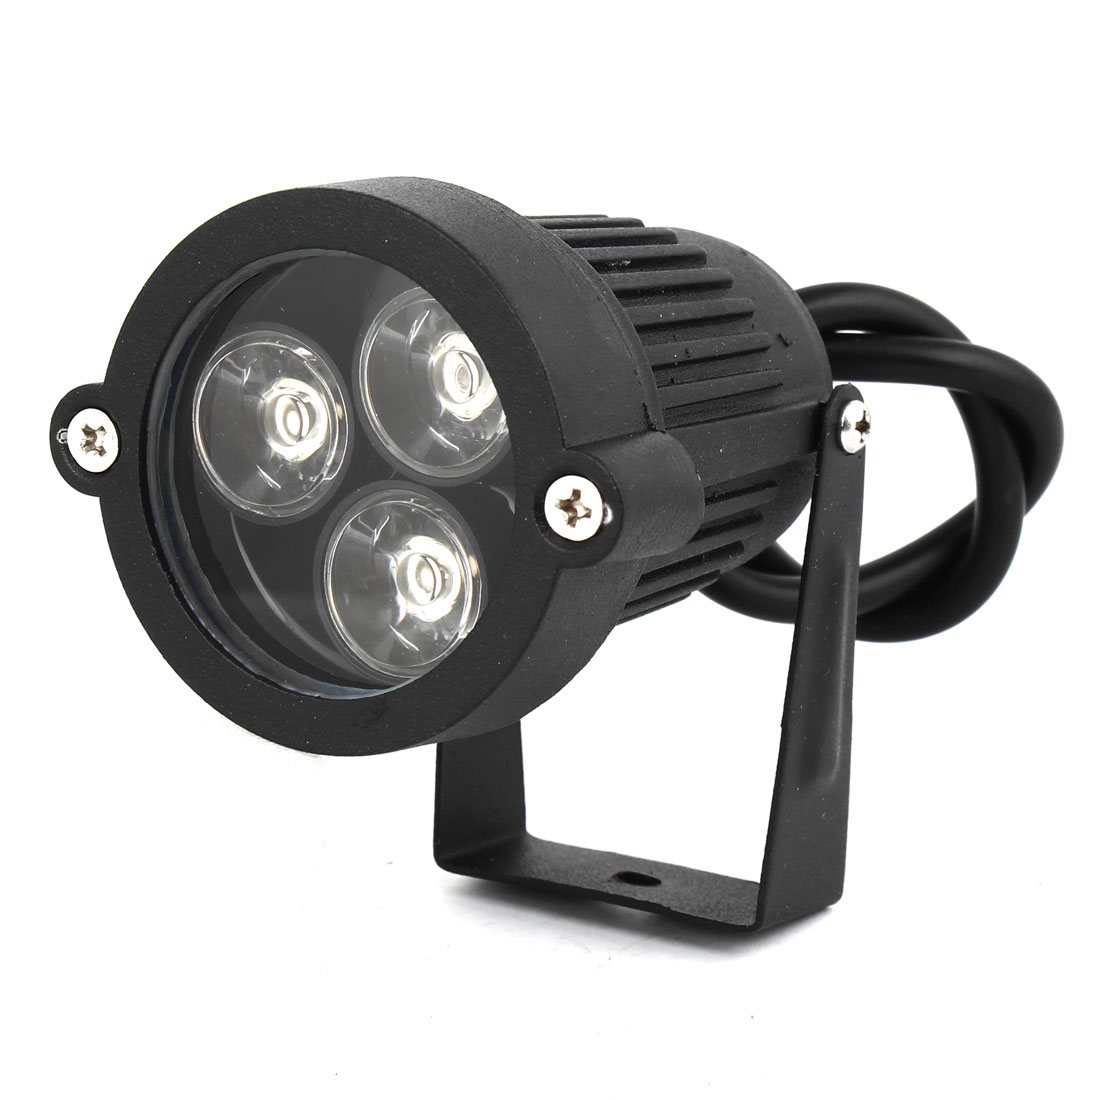 AC85-265V 6W 300-330LM White LED Light Lawn Garden Spotlight Lamp